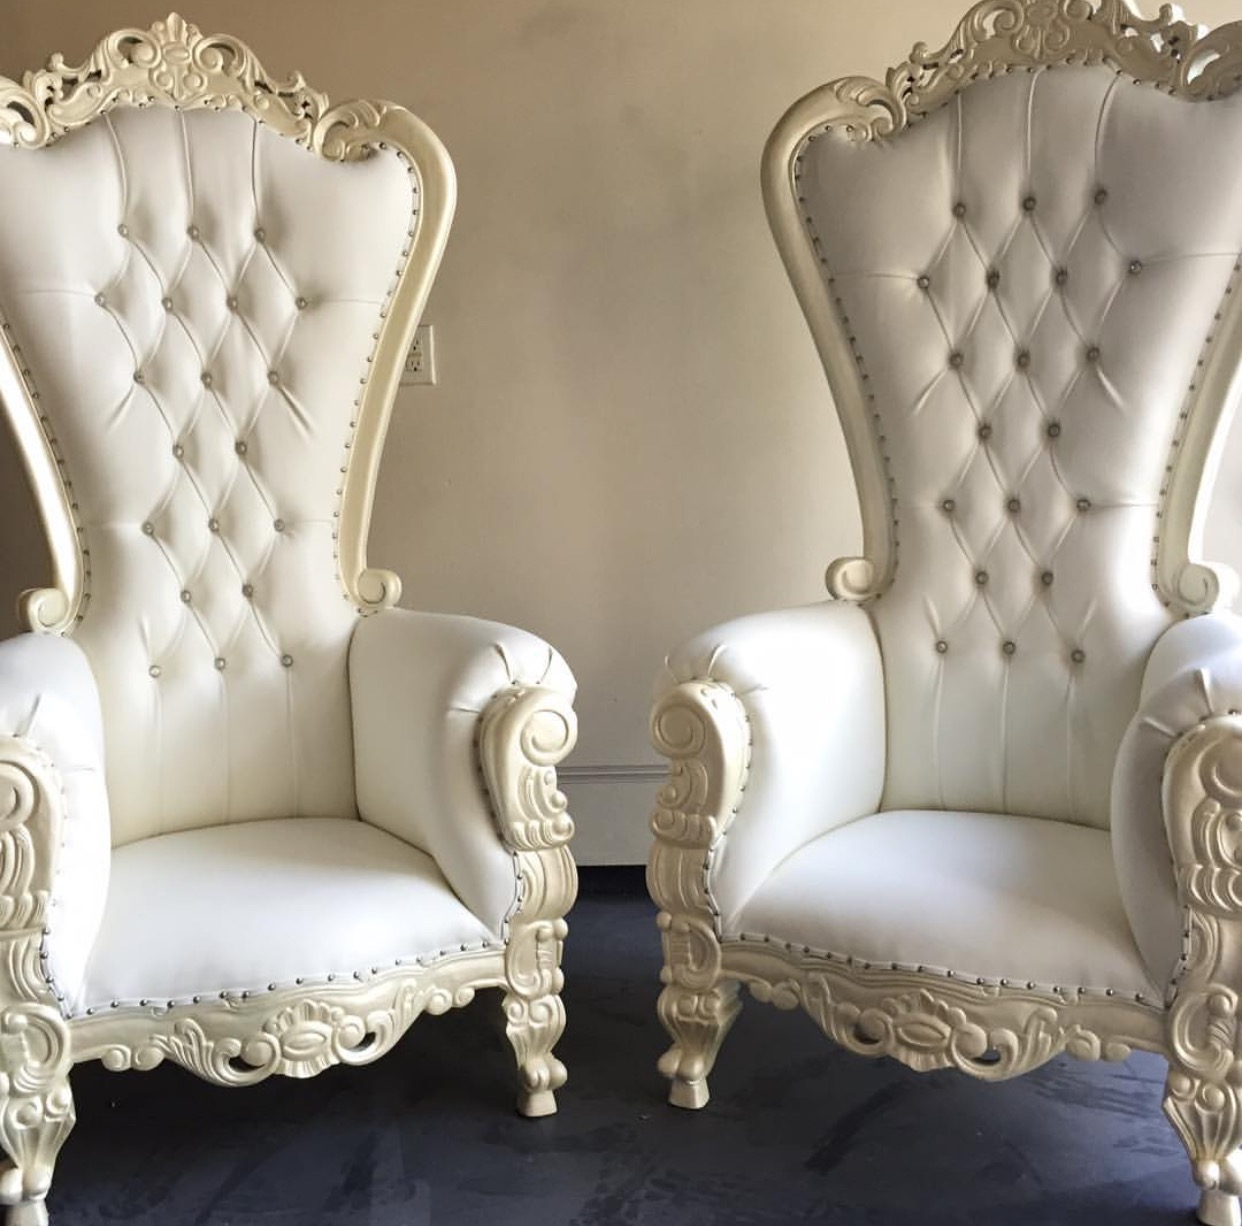 Astounding Nj Ny Throne Chair Rentals New Jersey New Yorks Wedding Dailytribune Chair Design For Home Dailytribuneorg